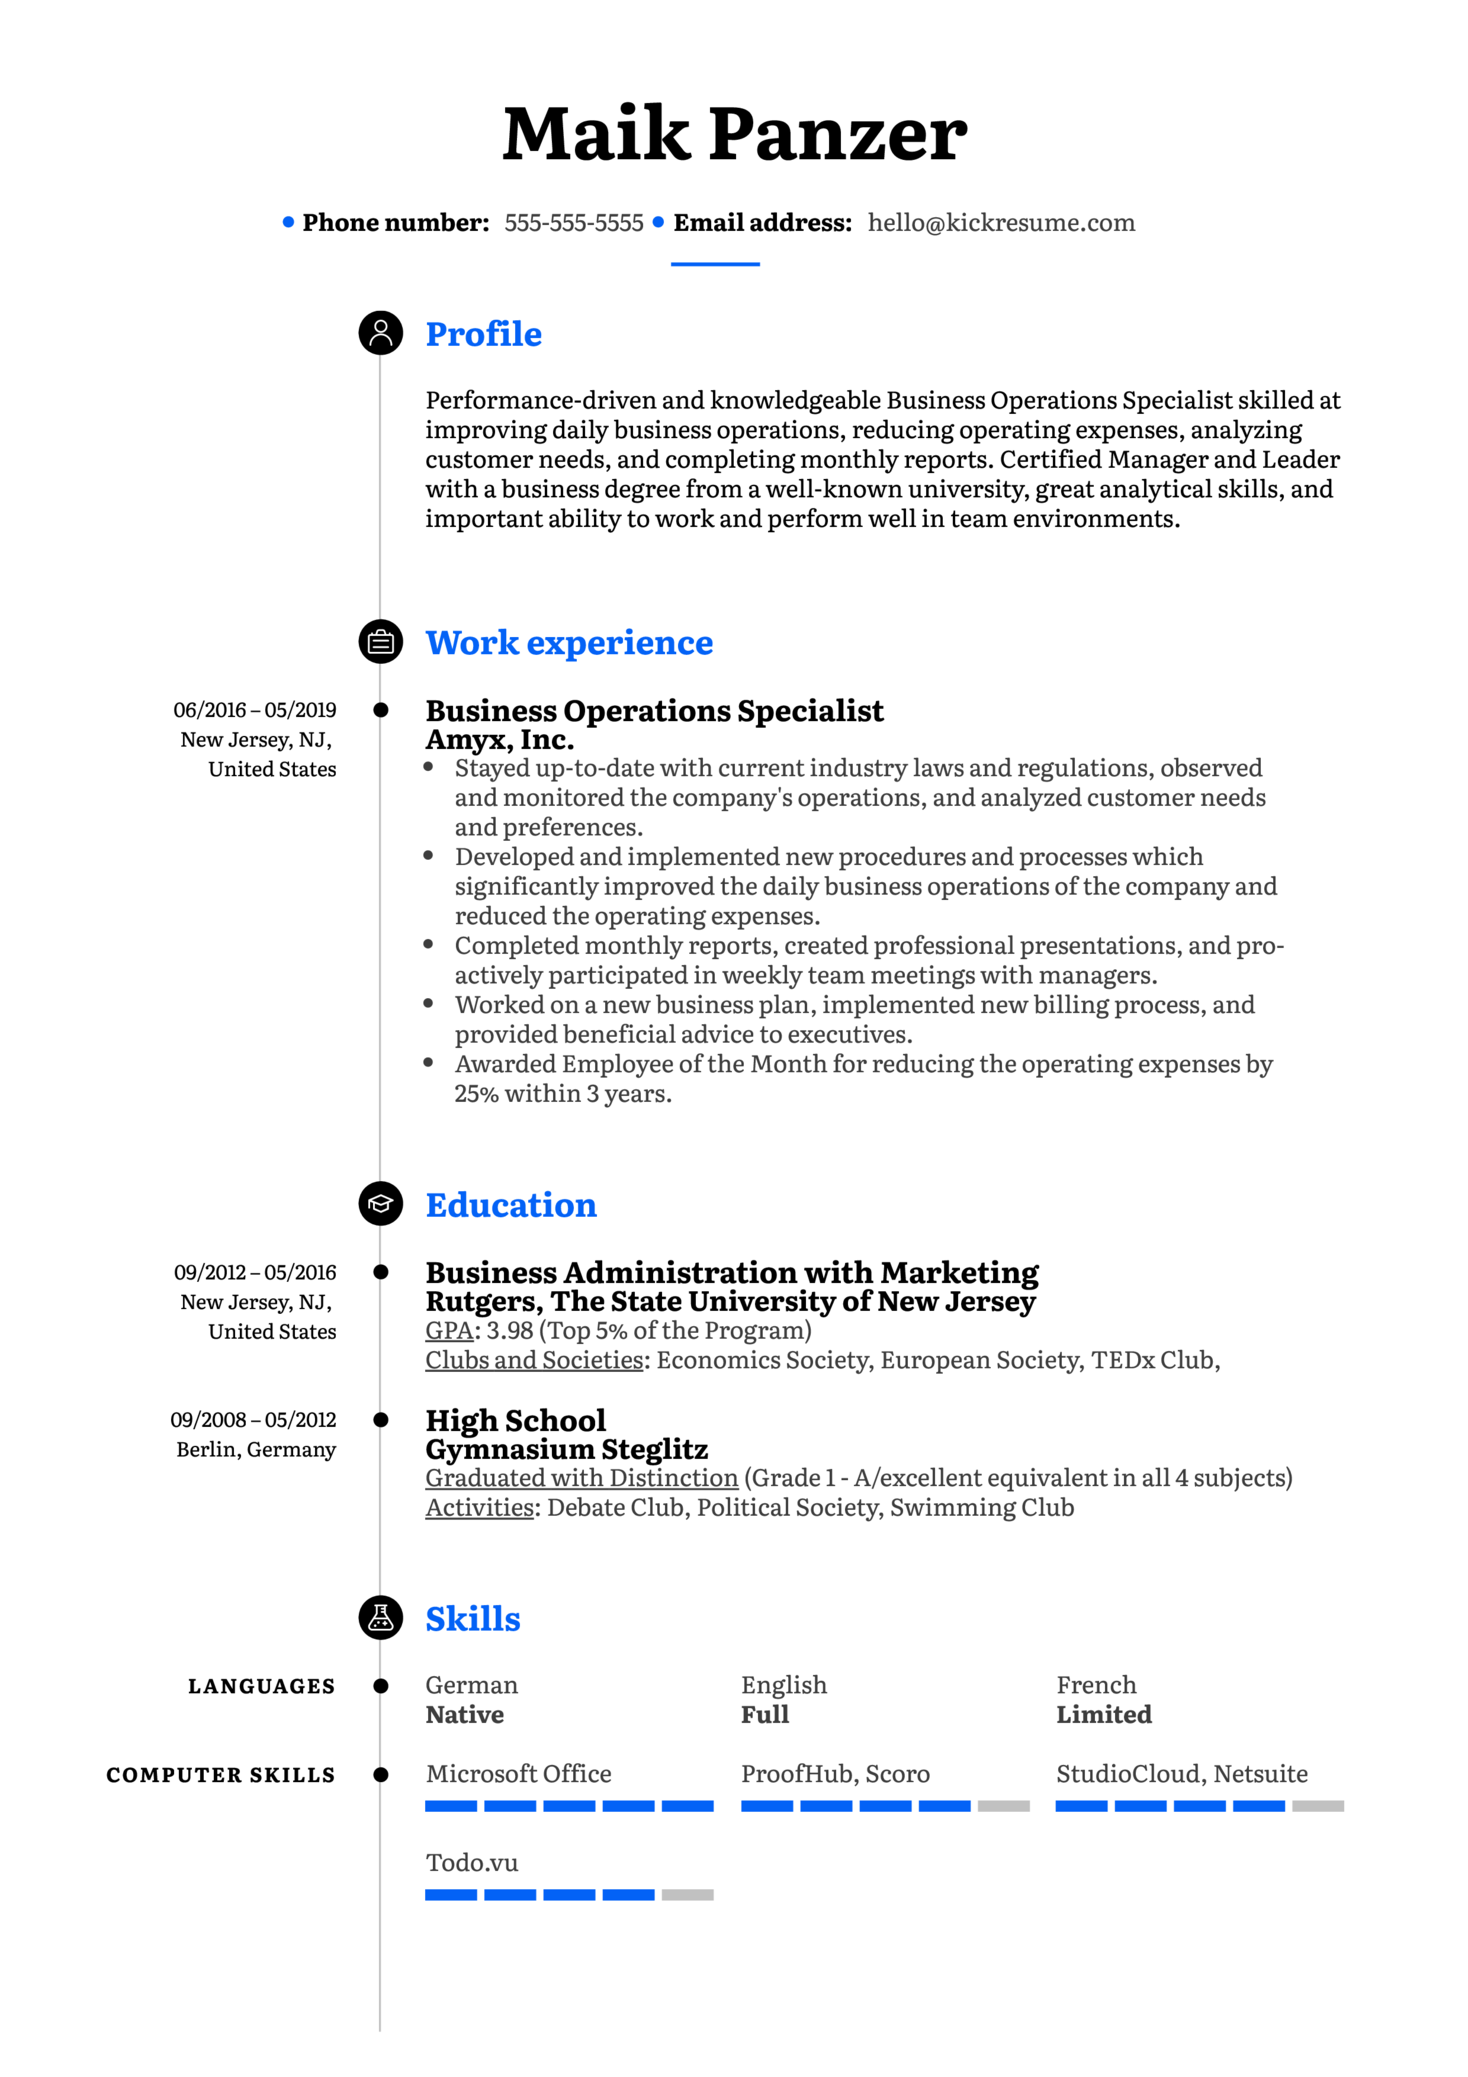 Business Operations Specialist Resume Example (Part 1)